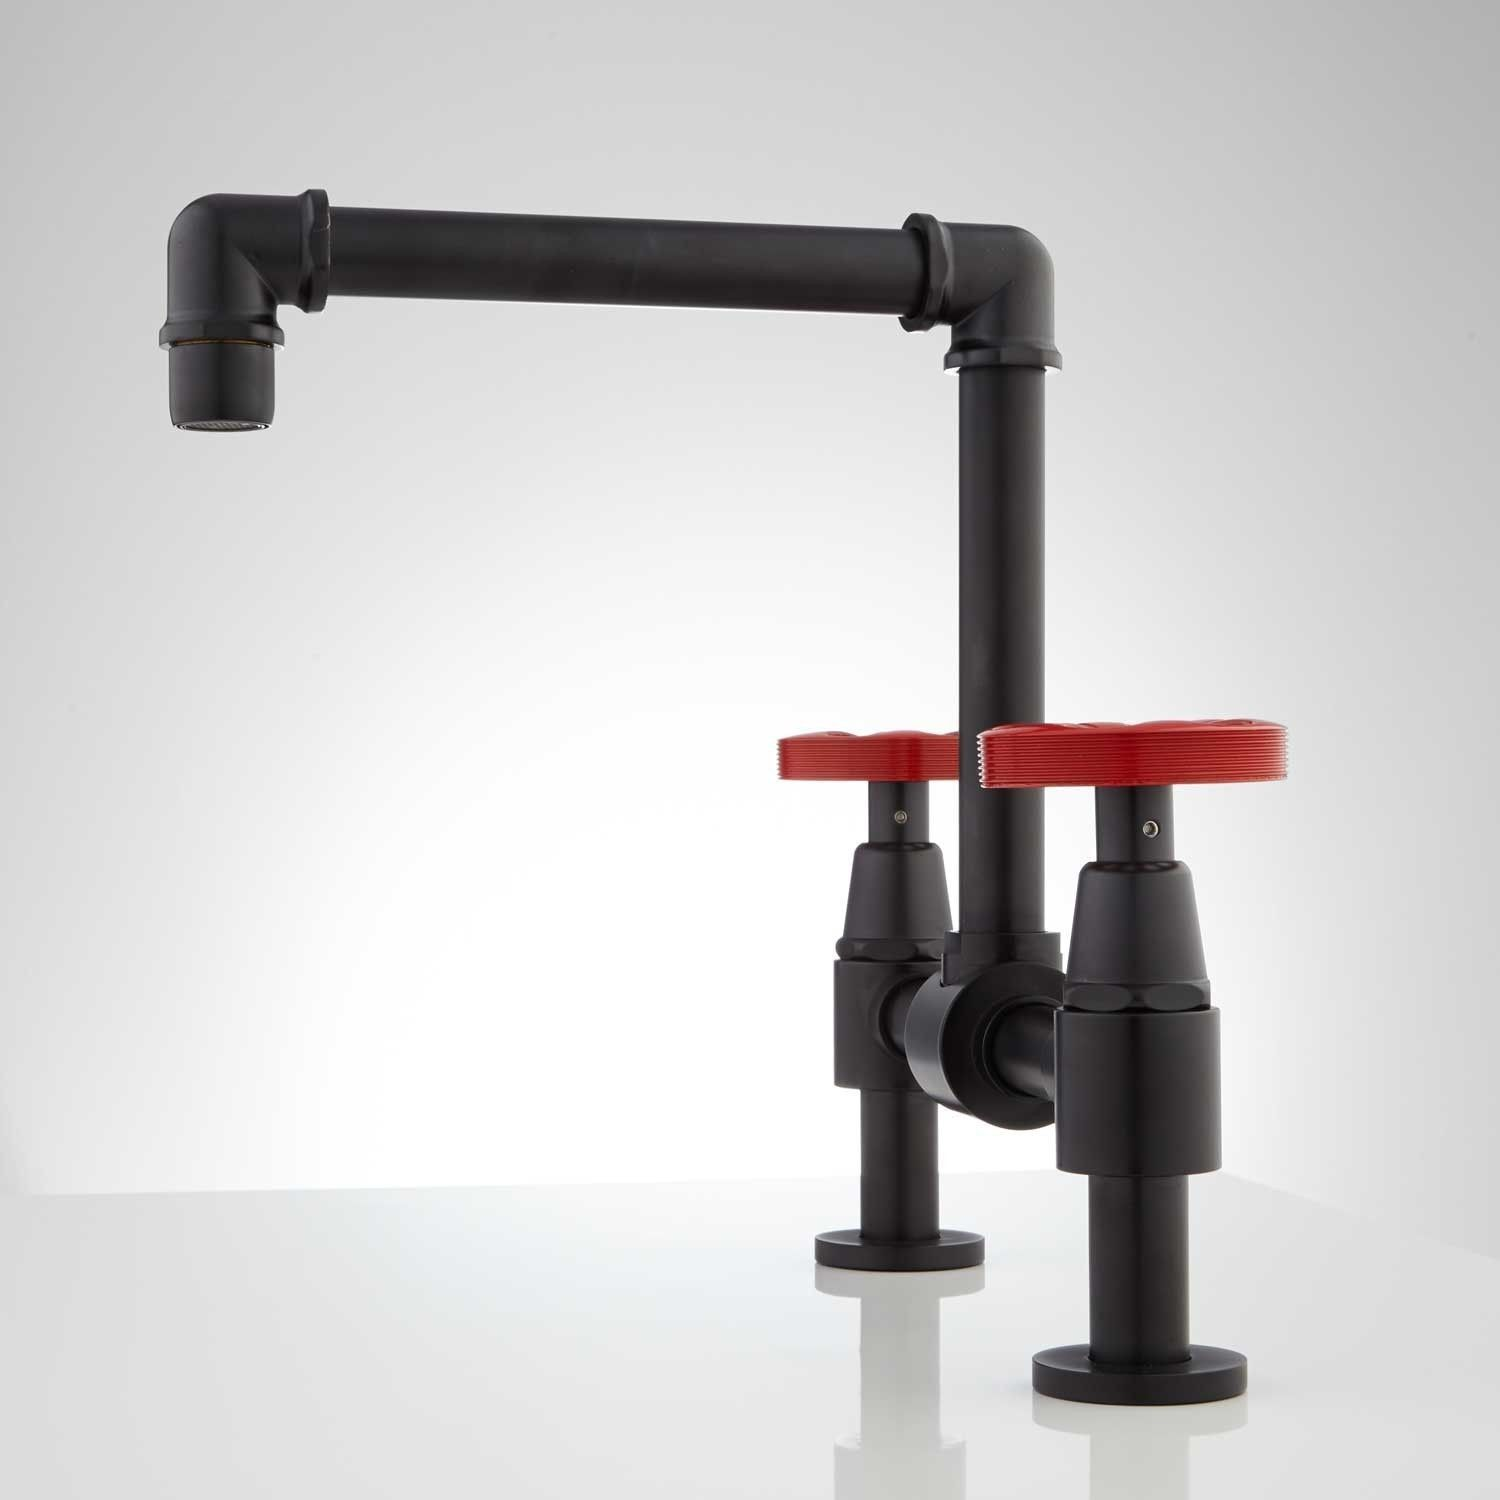 New Laboratory Faucets and Fixtures Check more at https ...